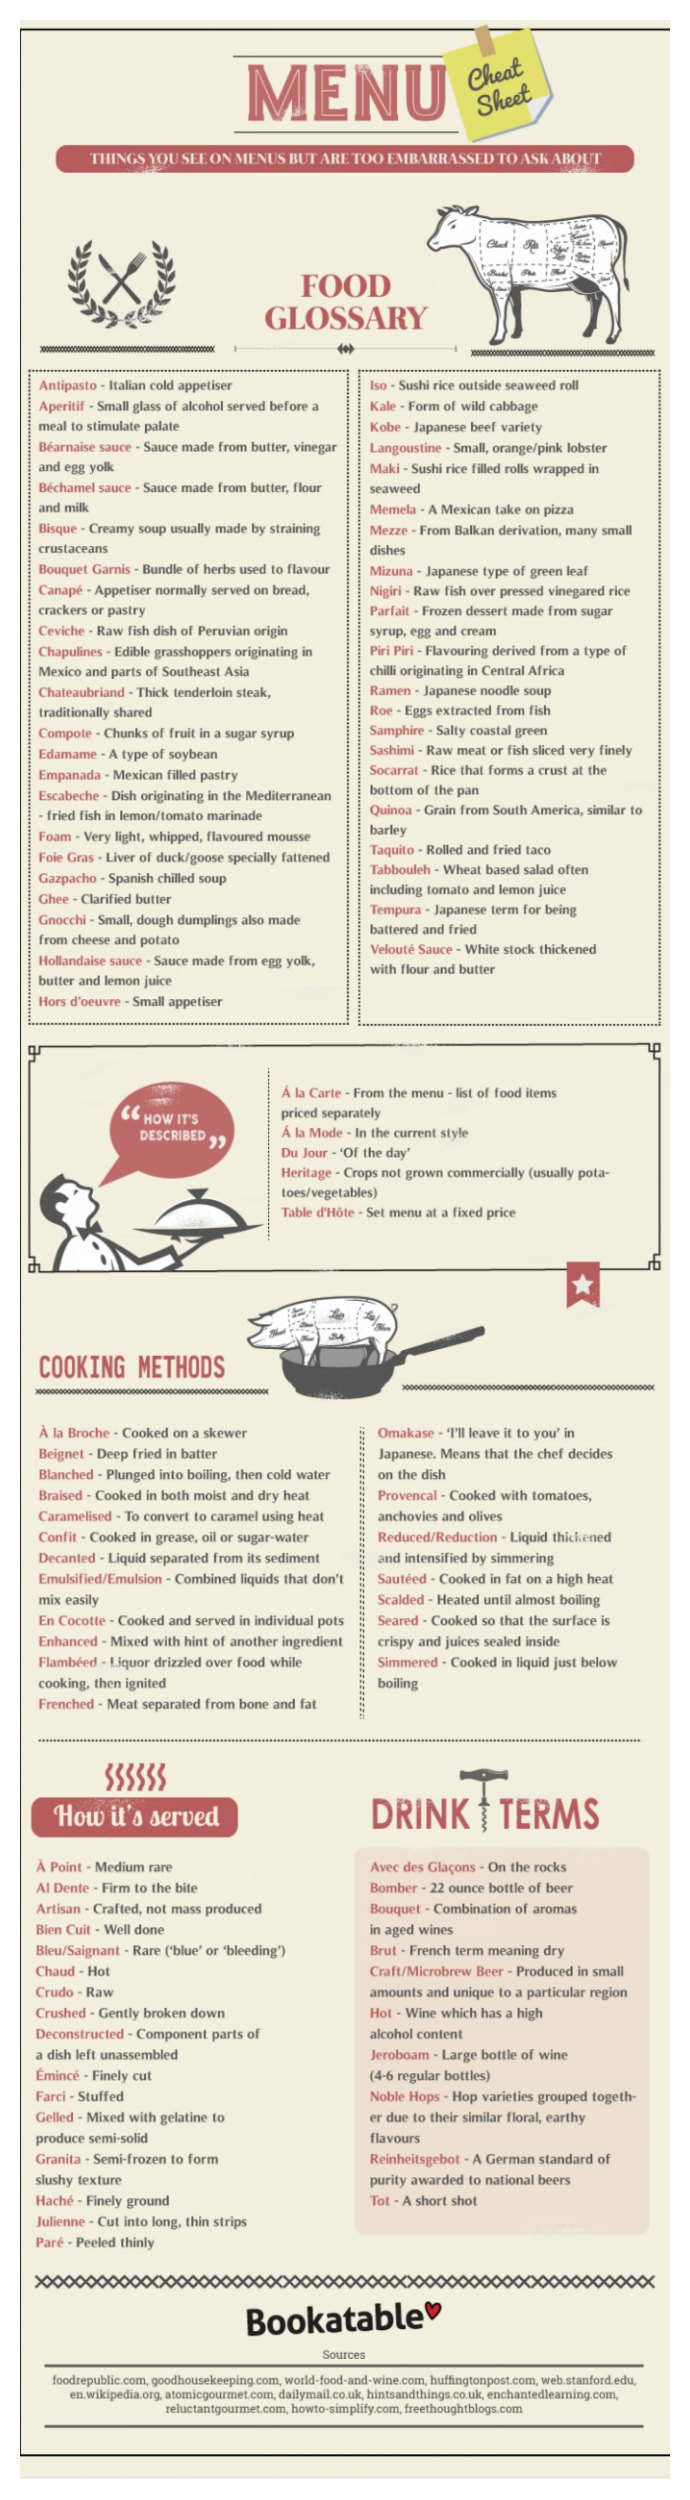 90 food menu terms explained